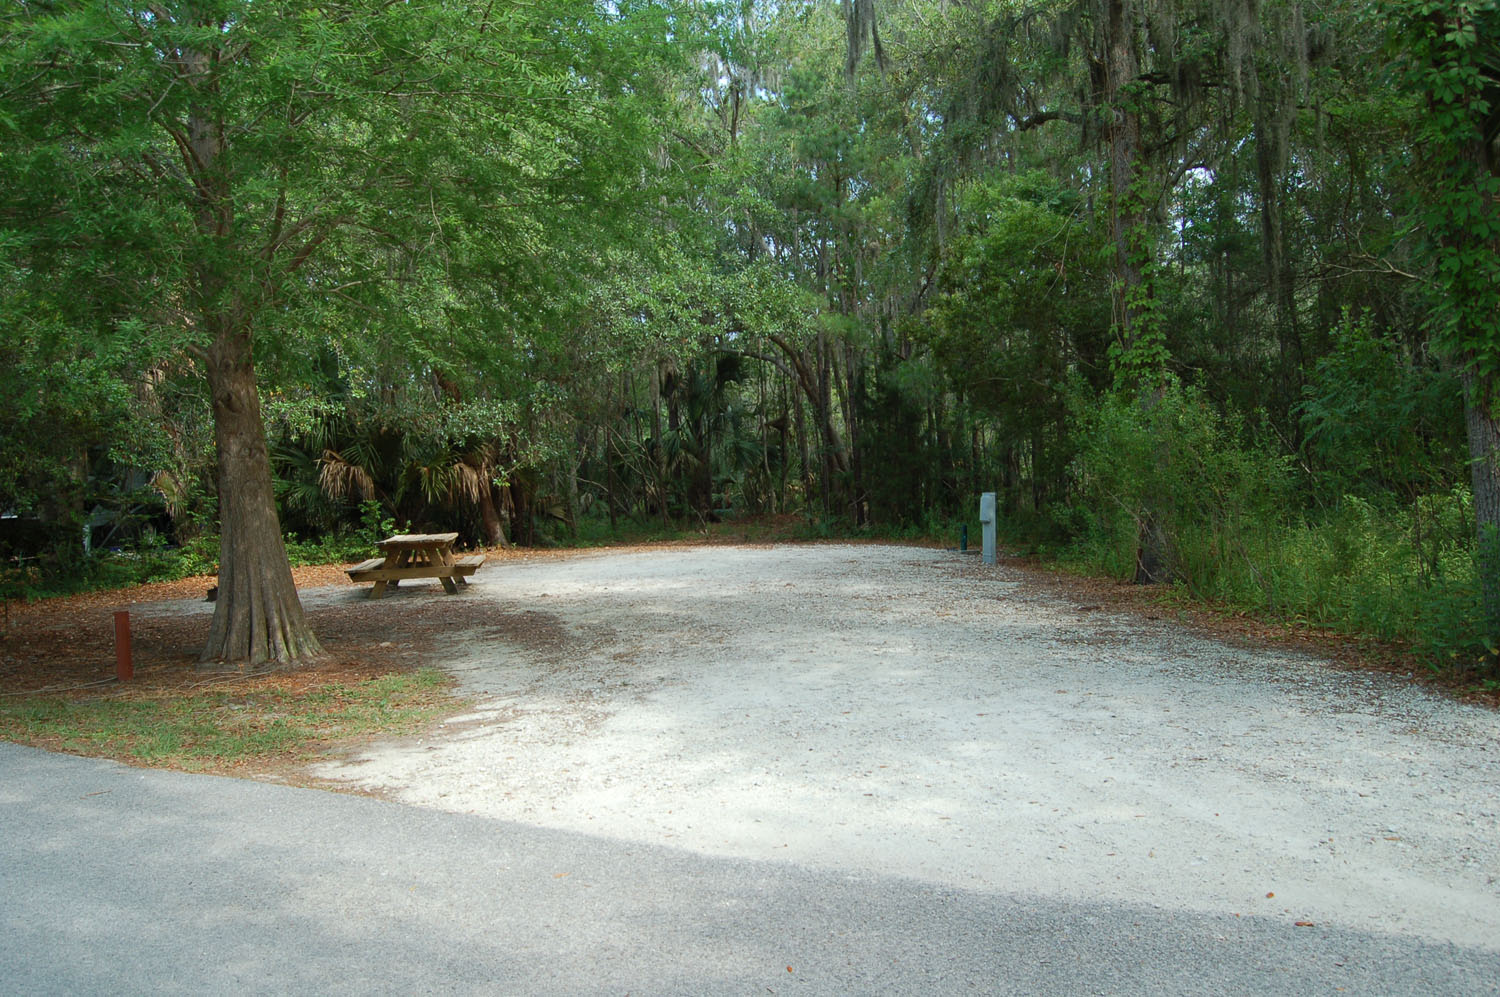 Image of campsite #47 at the Campground at James Island County Park